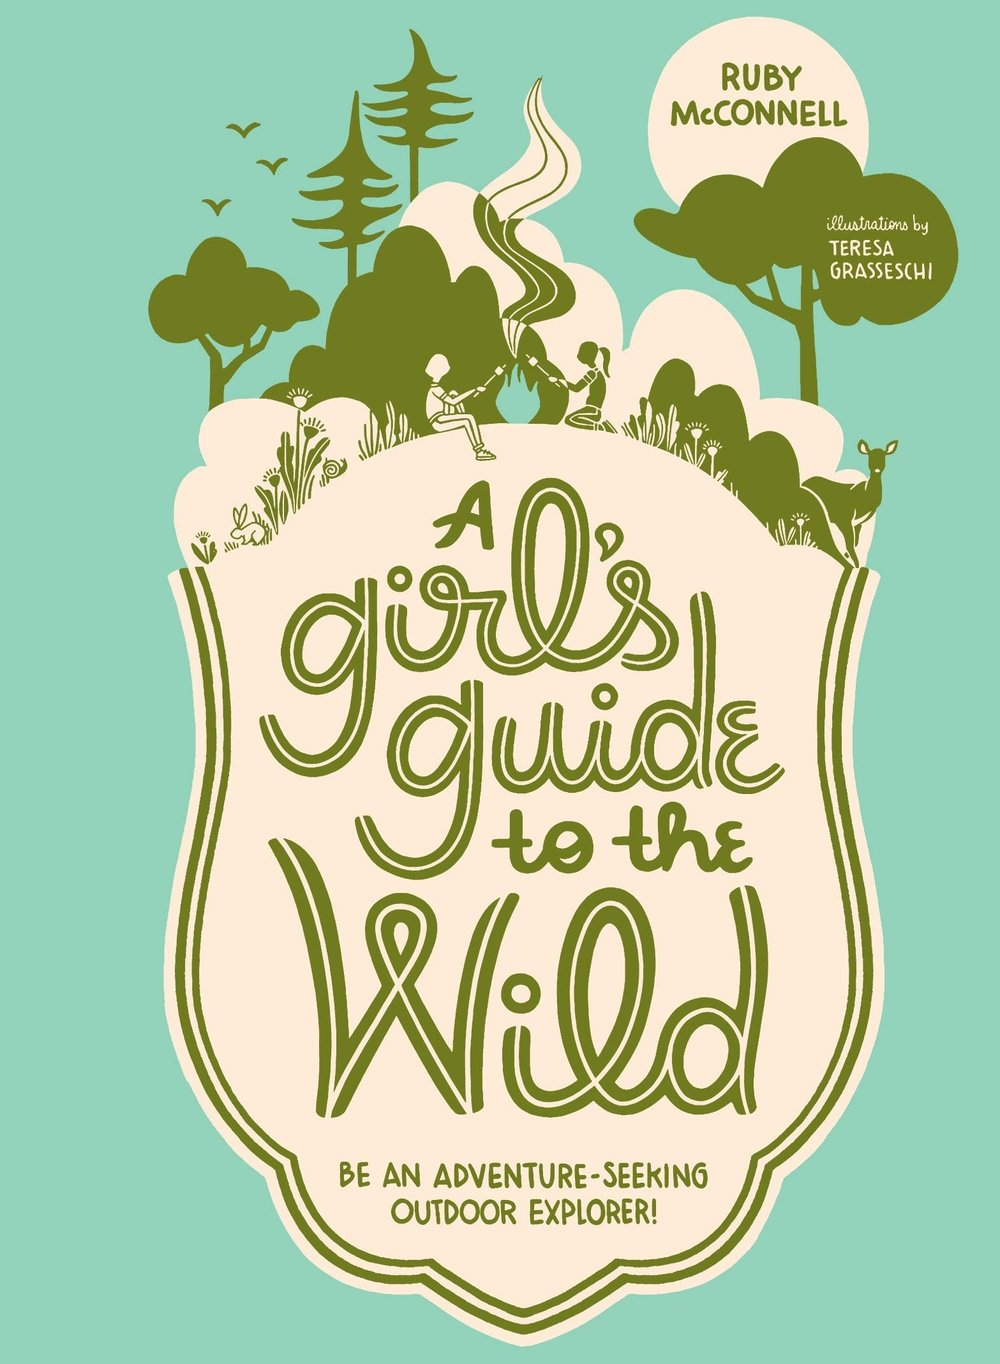 Coming May 23rd! A Girl's Guide to the Wild -